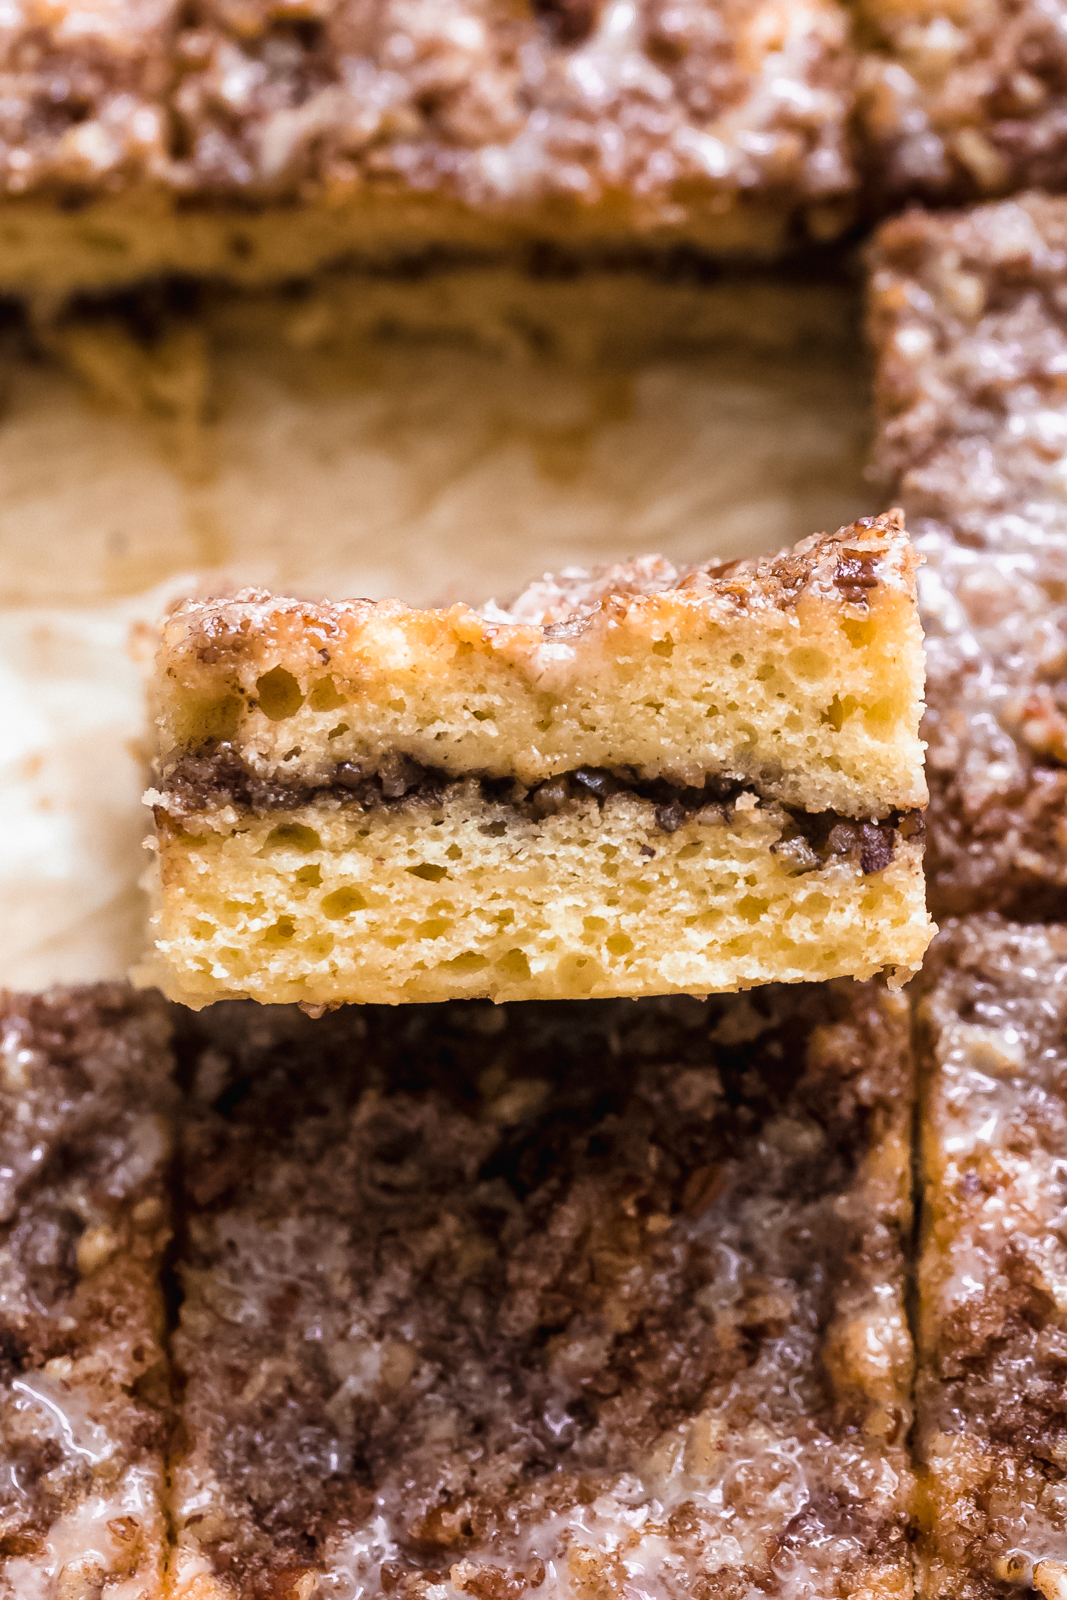 close up to show layers of coffee cake